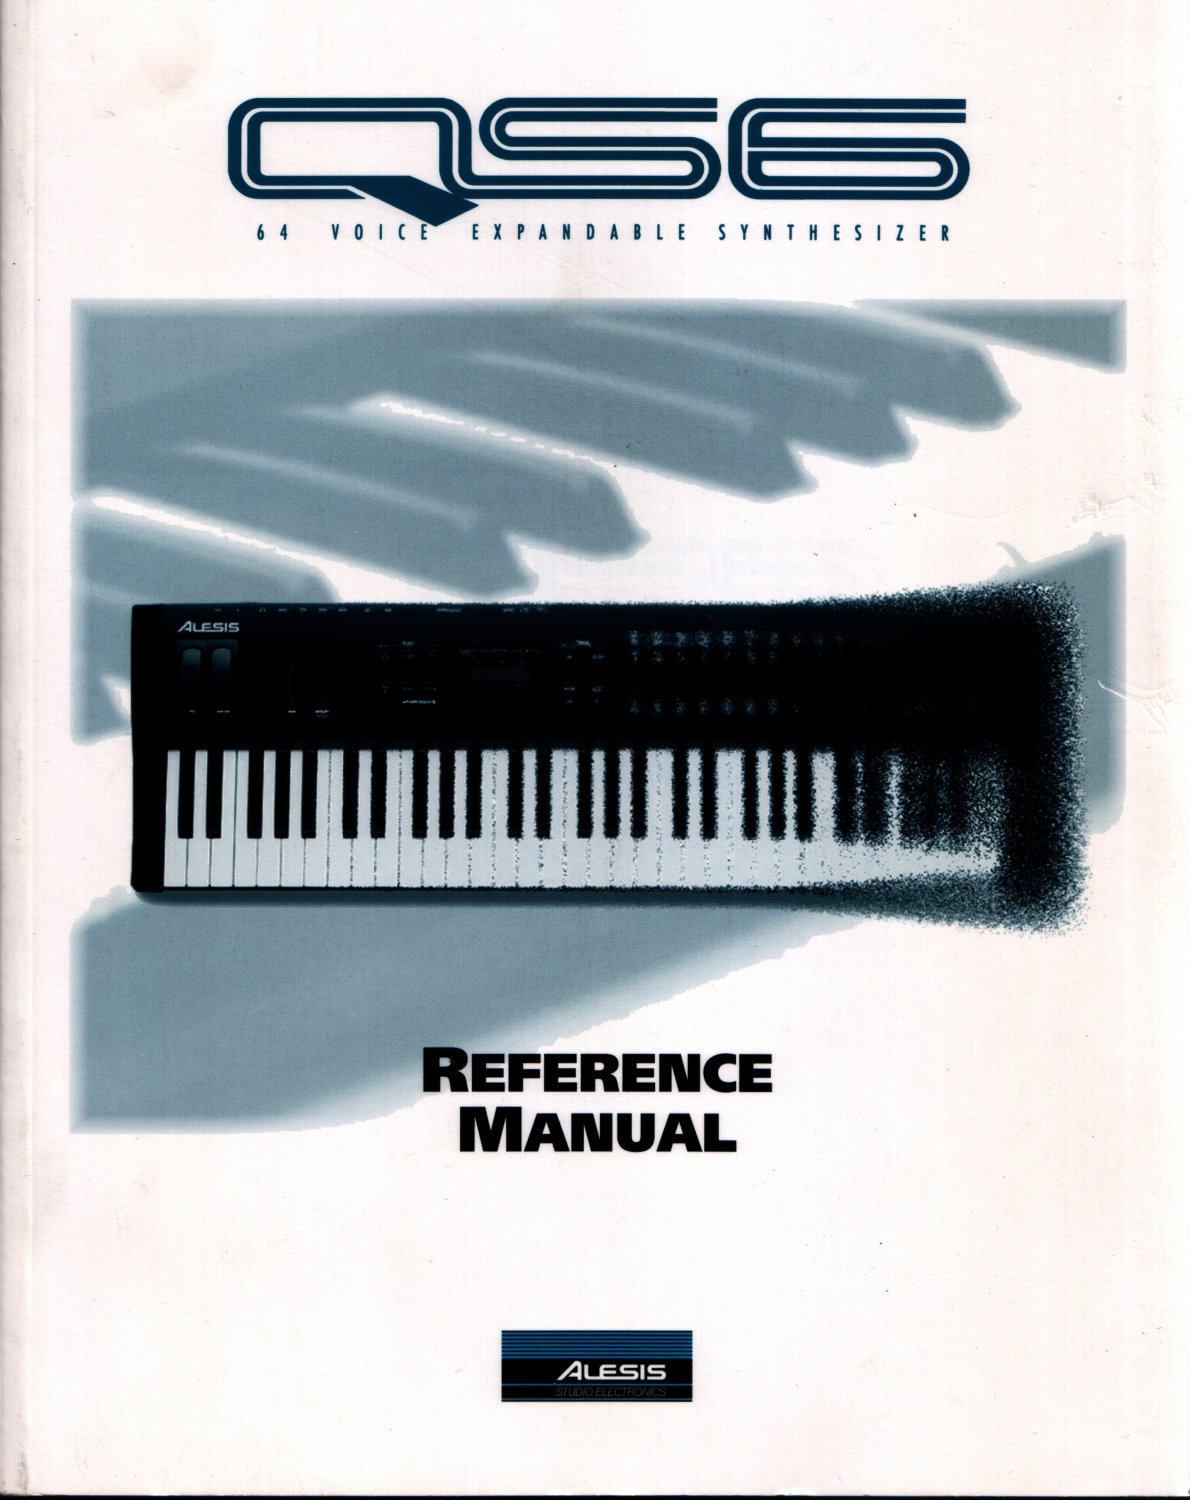 Original ALESIS QS6 REFERENCE MANUAL [1995] Original Manual for Alesis QS6 Synthesizer